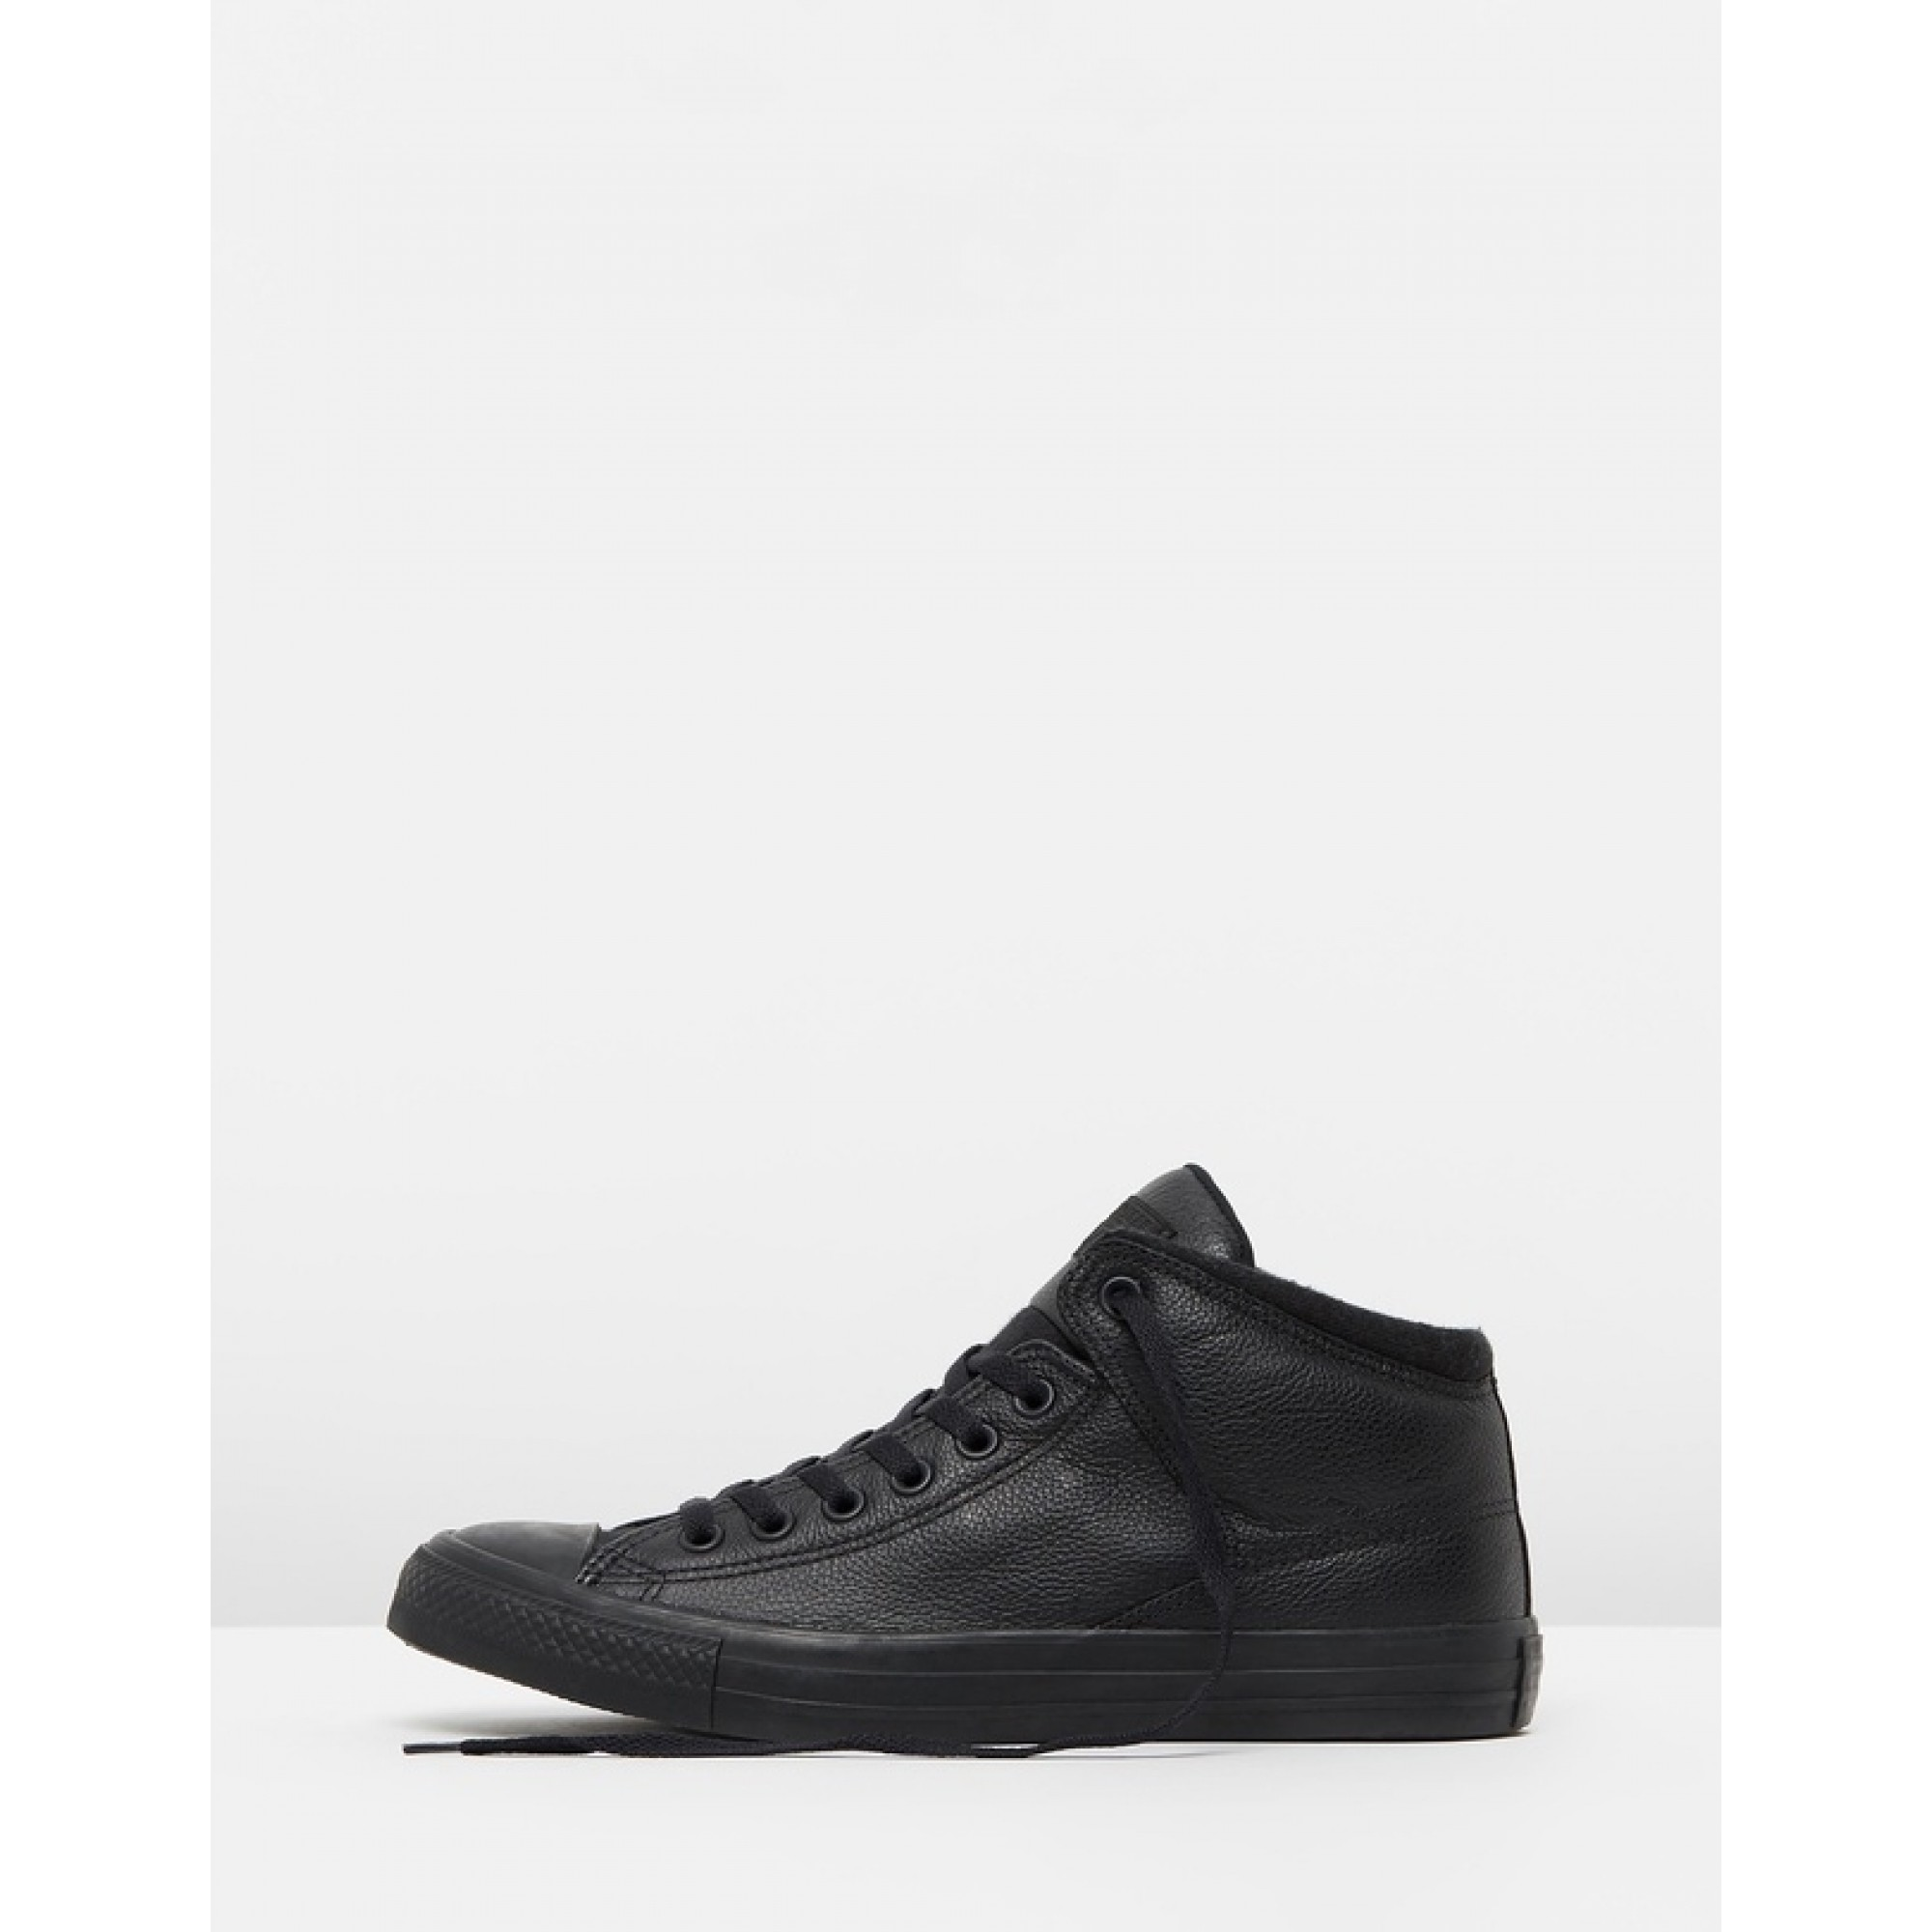 Venue Store CONVERSE Chuck Taylor All Star High Street Post Game Leather Hi  Shoe - Black Black Black Wanted Streetwear Free Delivery Over  100 e5d15bf9b